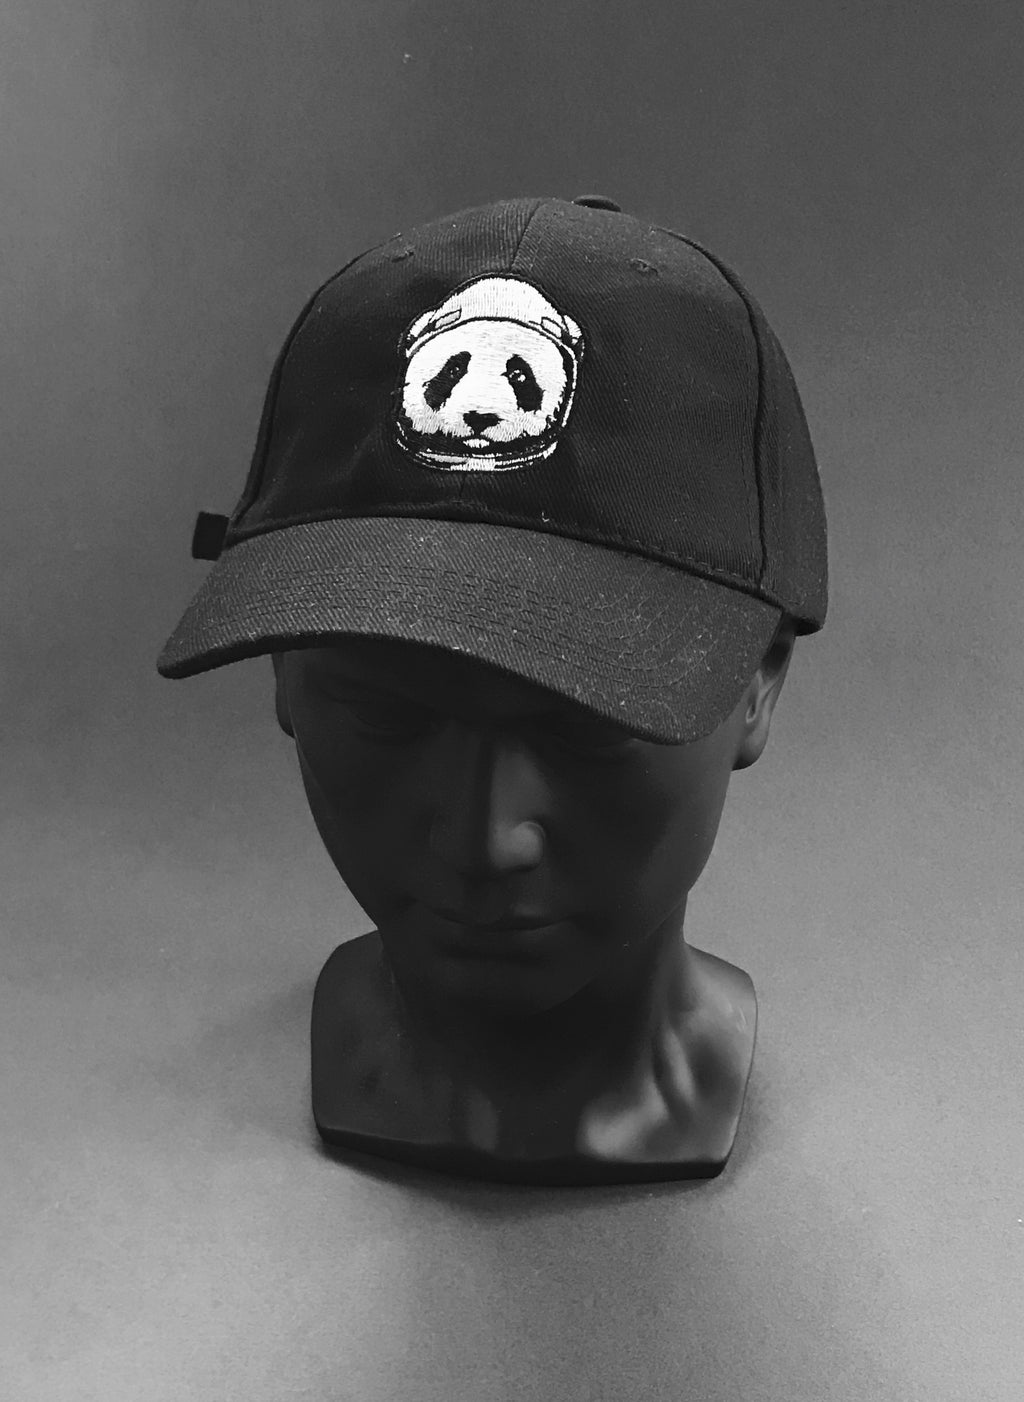 Star Wars: The Last Jedi (2017) - A Cast & Crew Baseball Cap